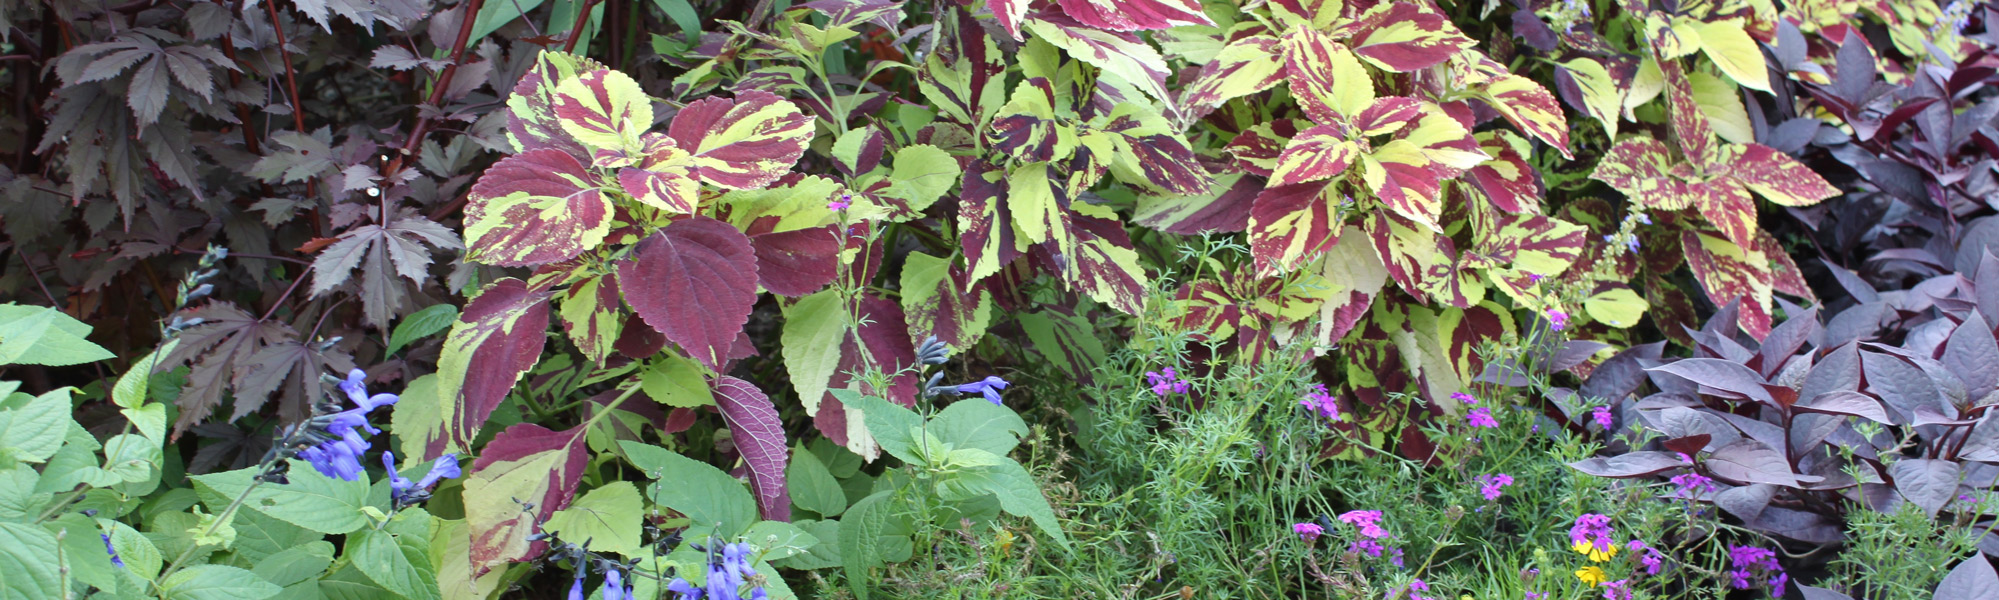 Plant Growth Coleus